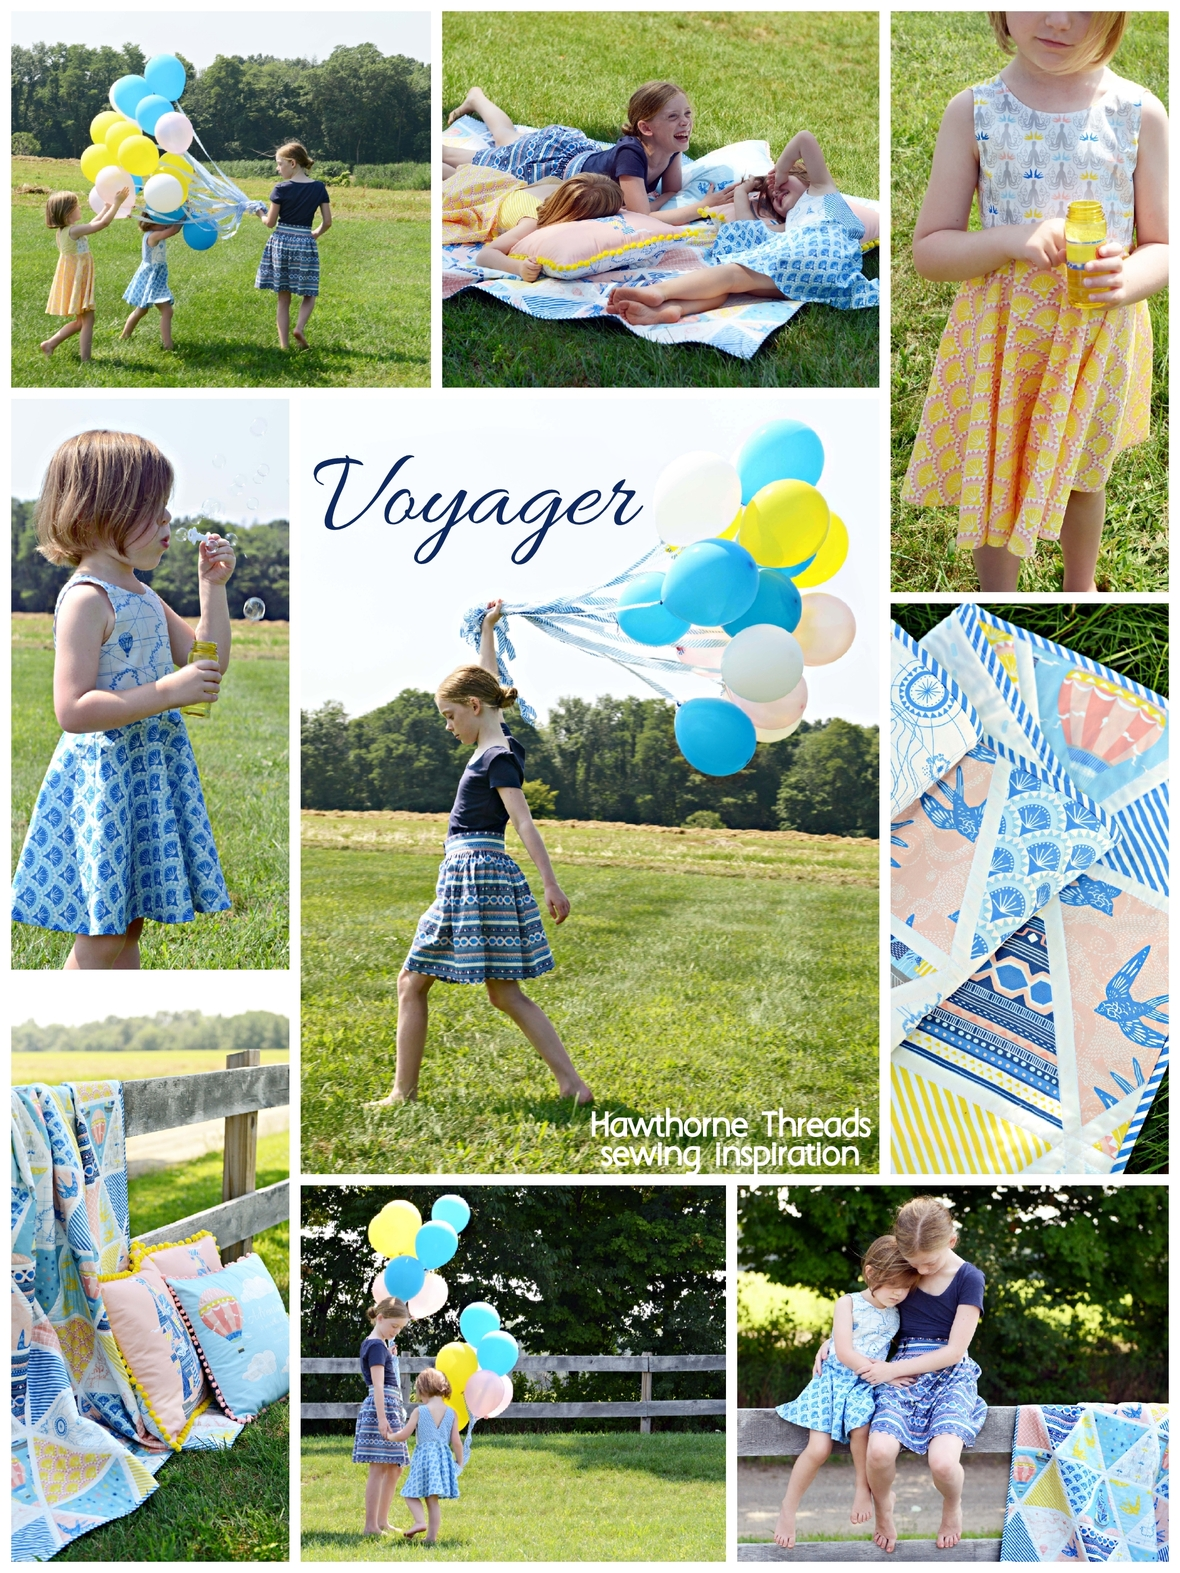 Voyager Fabric Sewing Inspiration